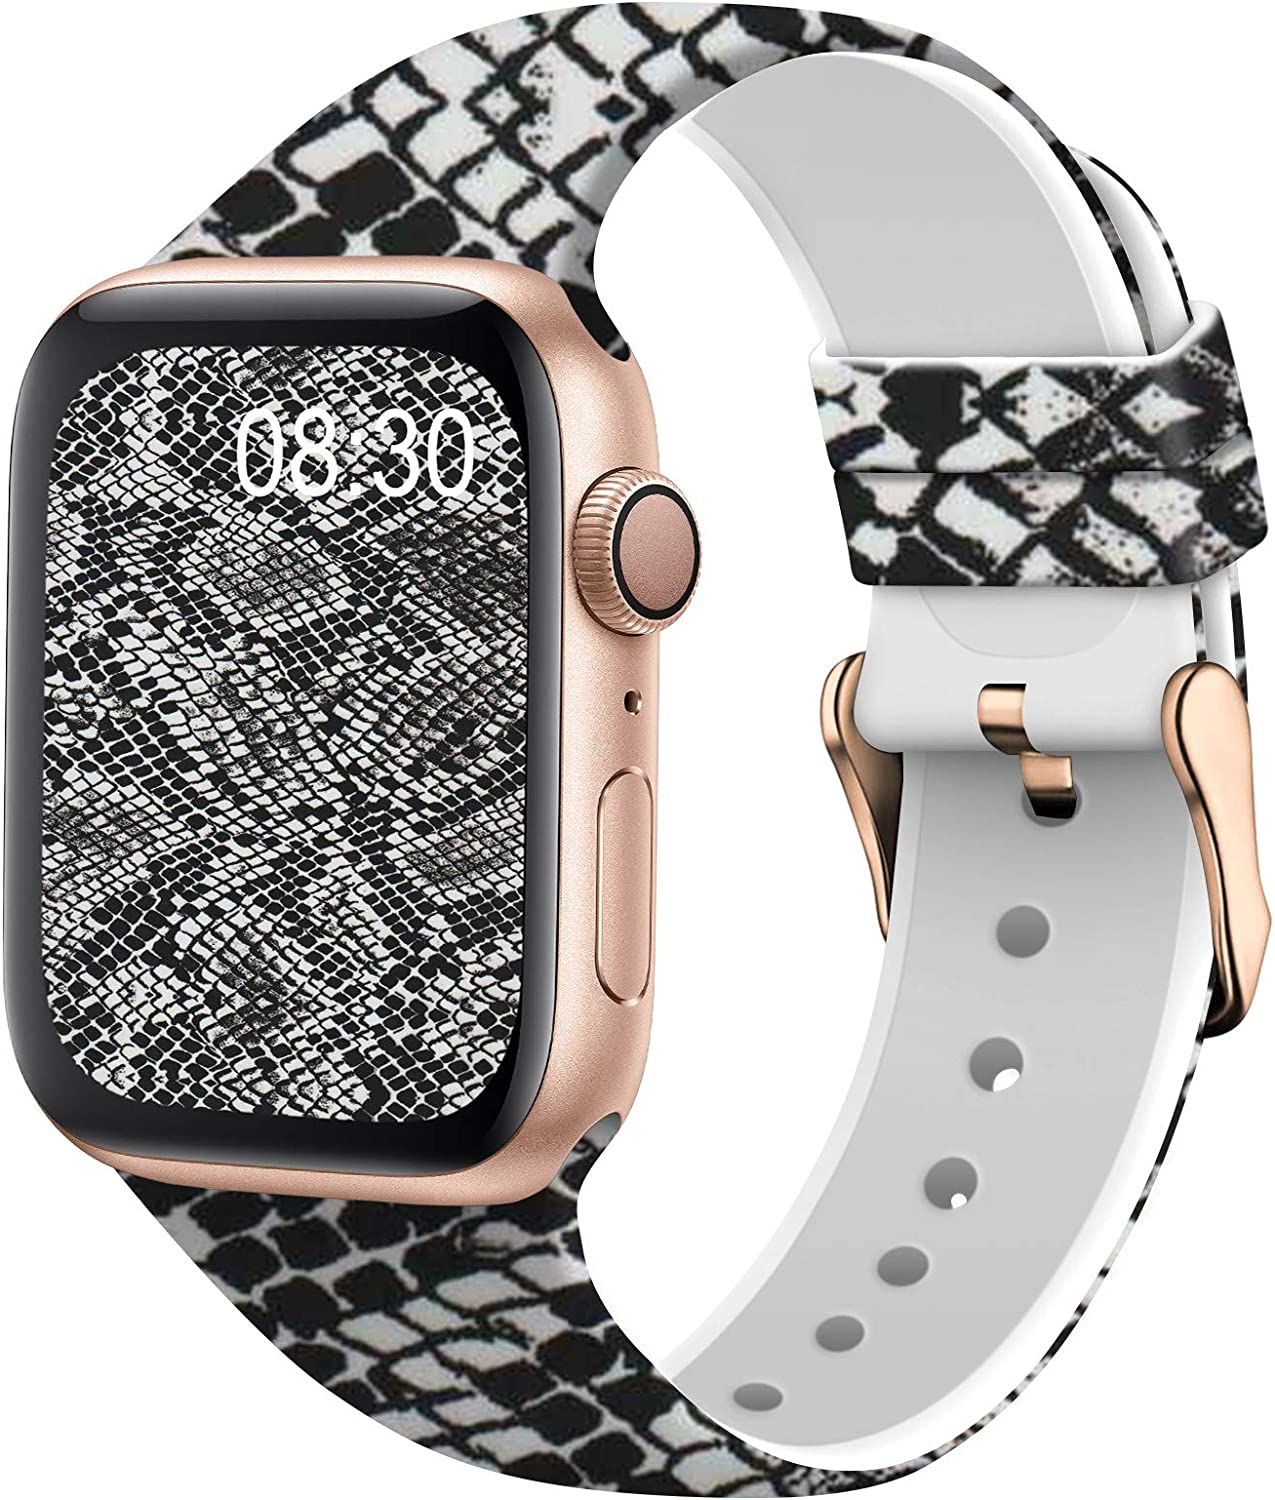 TSAAGAN Silicone Pattern Printed Band Compatible for Apple Watch Band 38mm 42mm 40mm 44mm, Floral Soft Sport Replacement Strap Wristband for iWatch Series 6/5/4/3/2/1 (Snake, 42mm/44mm)